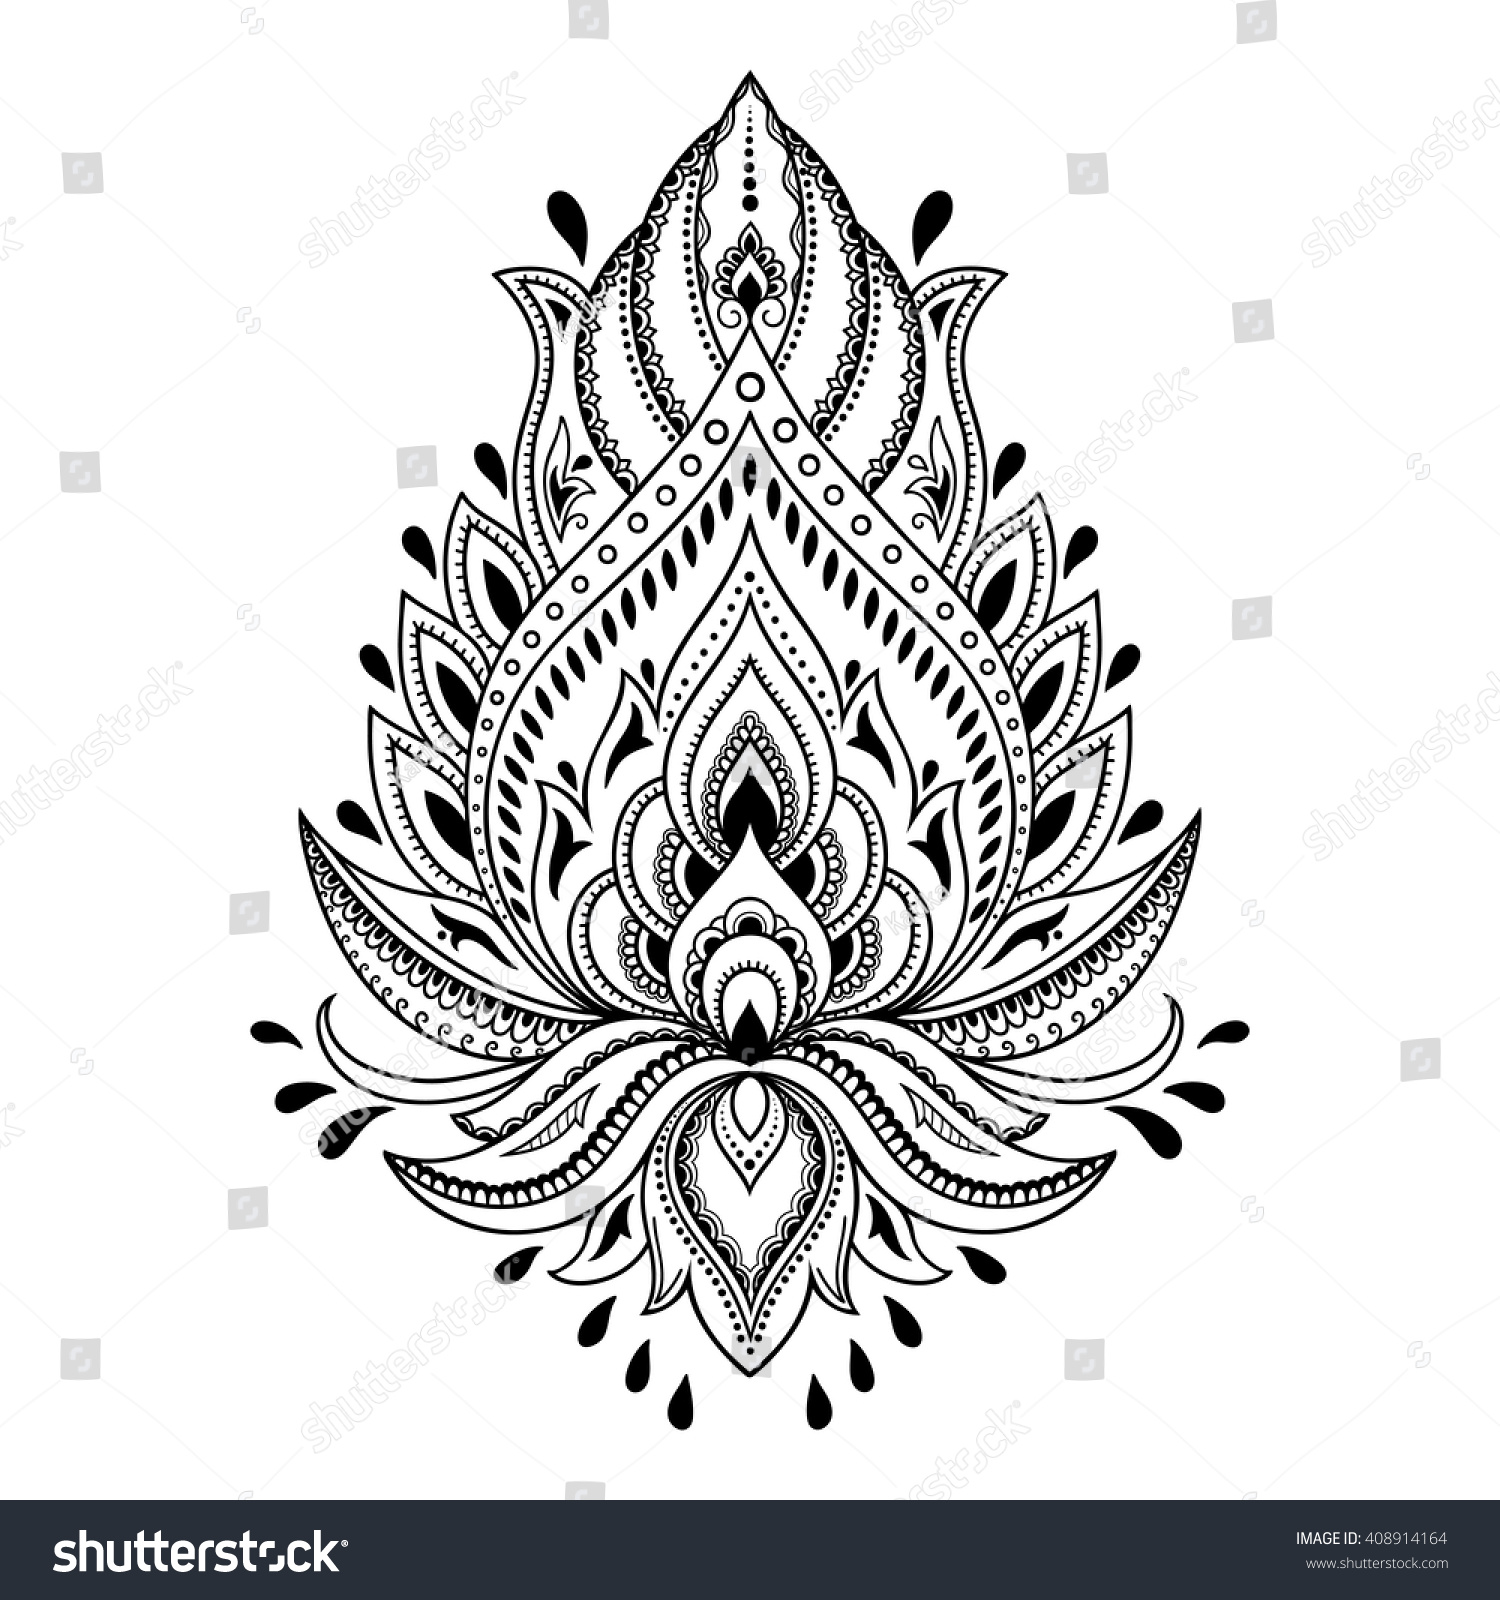 Mehndi lotus flower pattern henna drawing stock vector 408914164 mehndi lotus flower pattern for henna drawing and tattoo decoration in ethnic oriental indian izmirmasajfo Image collections